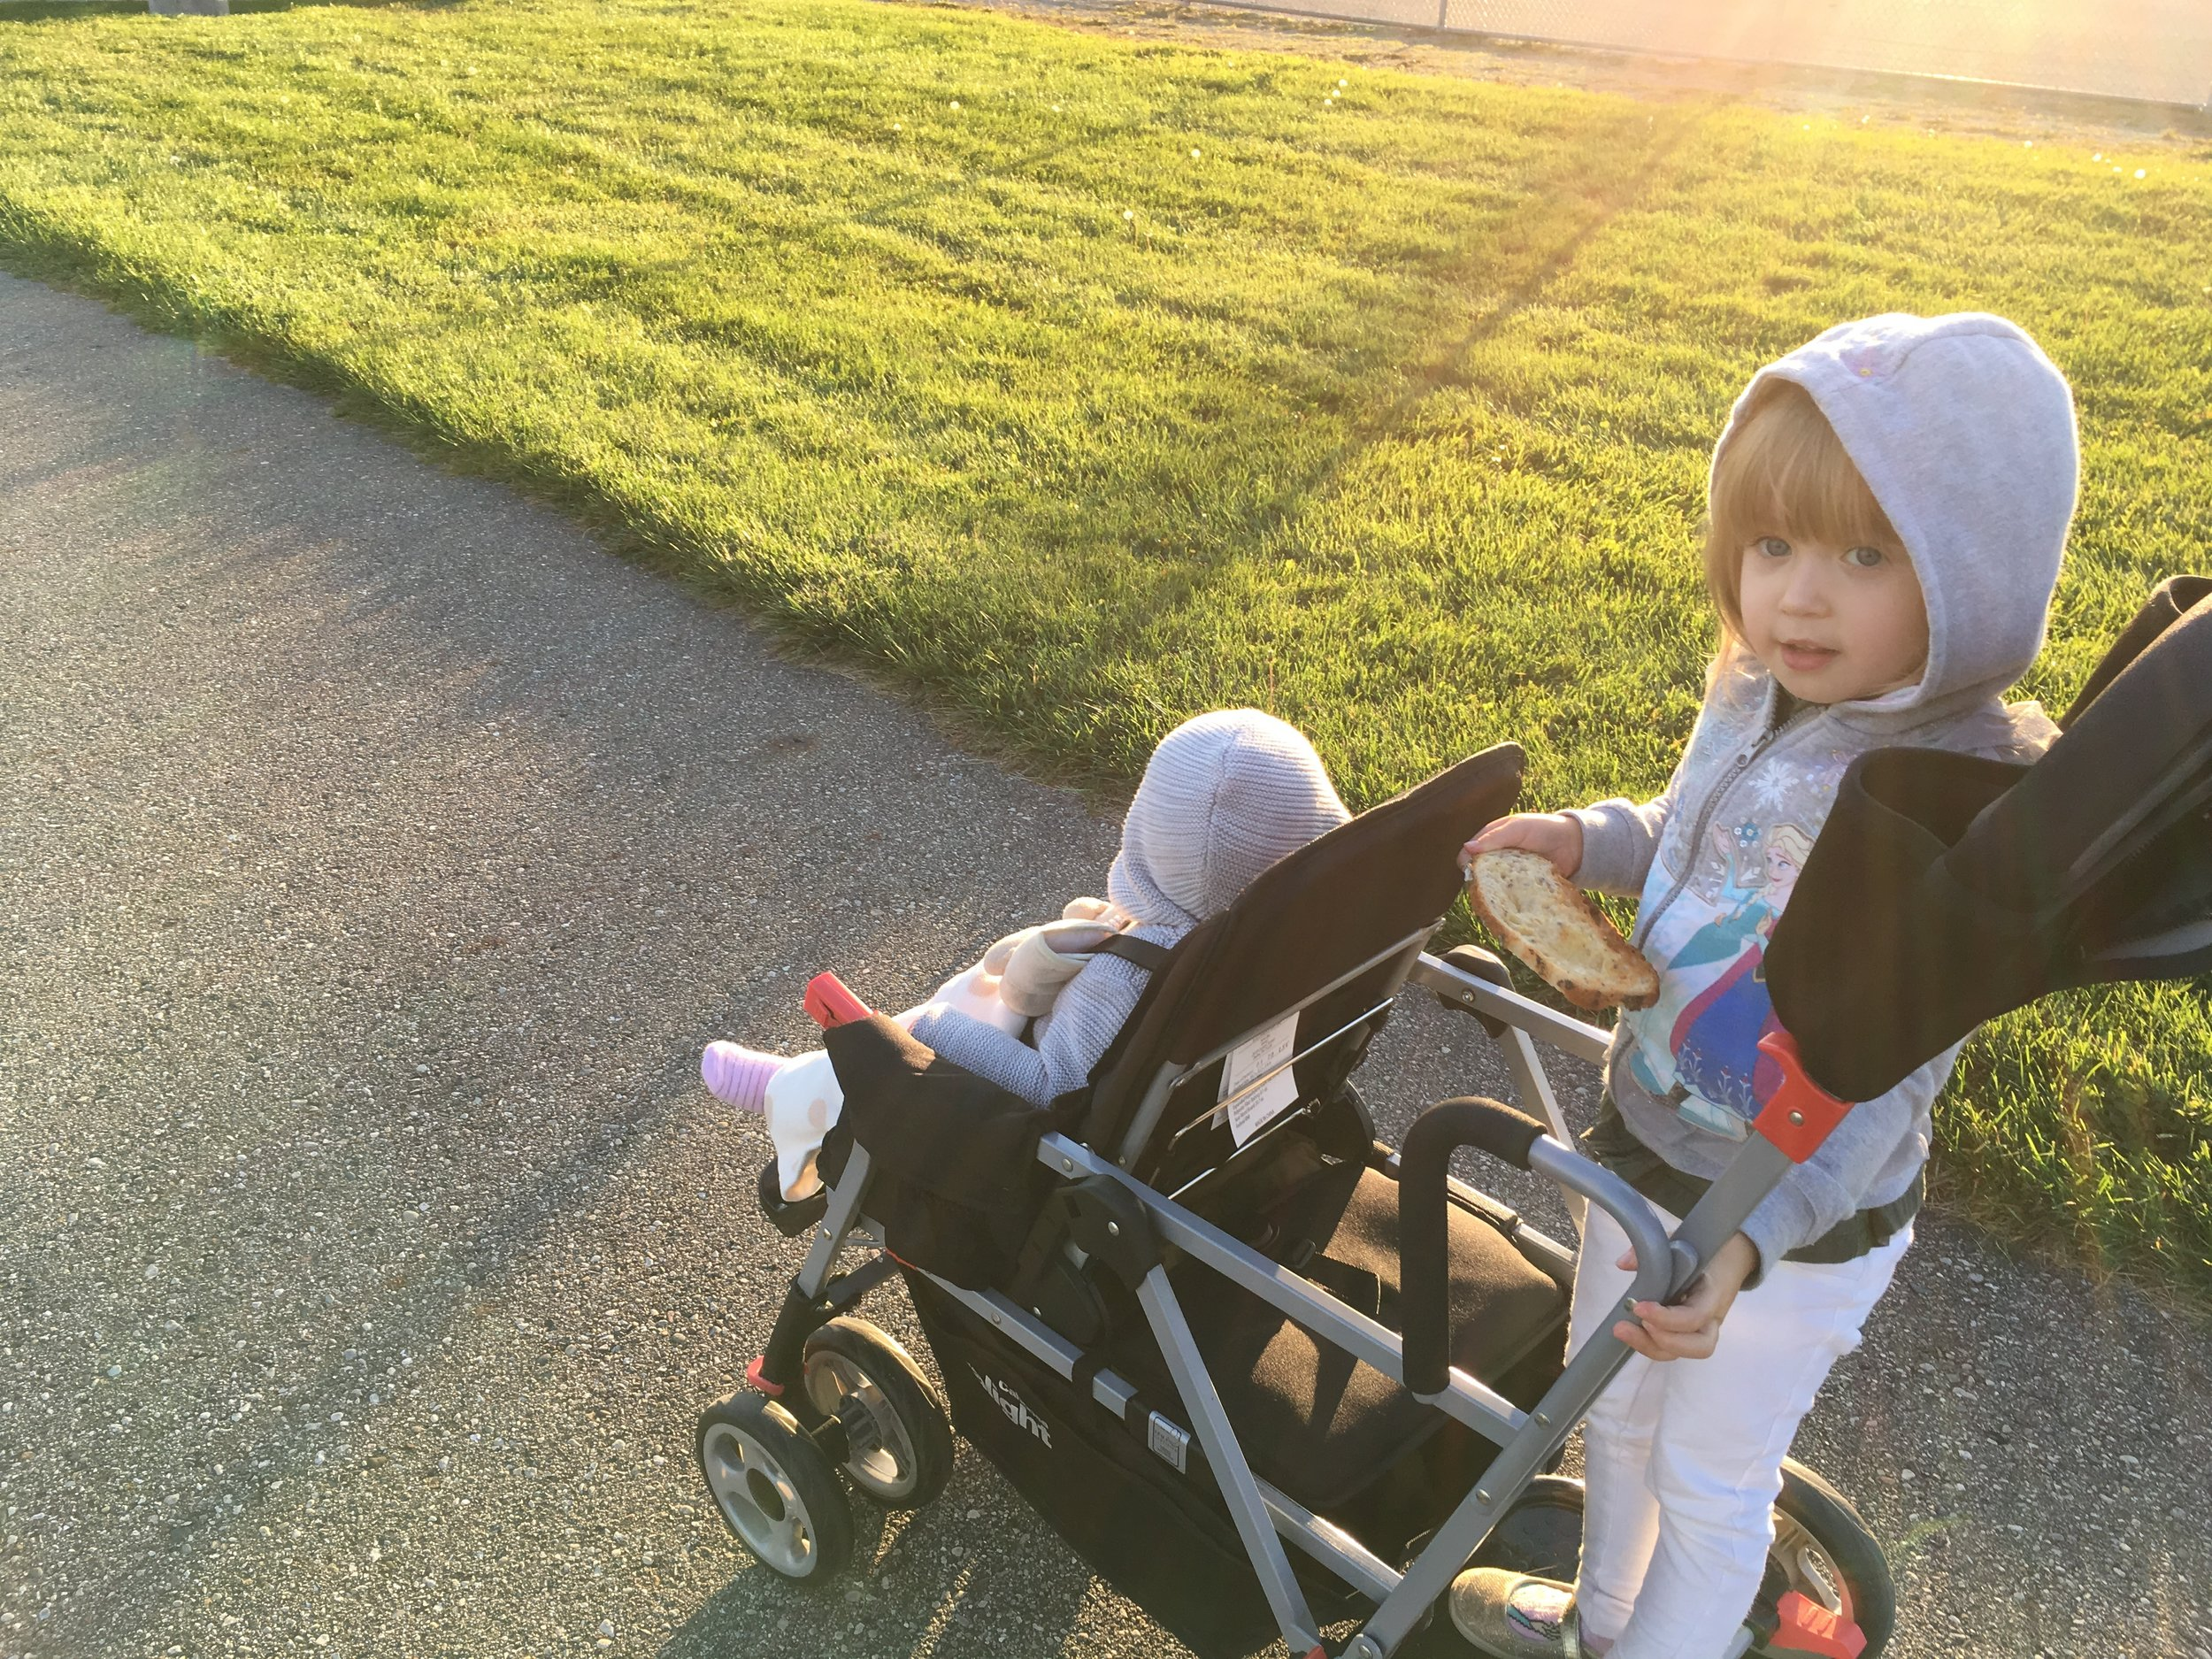 The girls on the stroller at the park (Troy, MI)